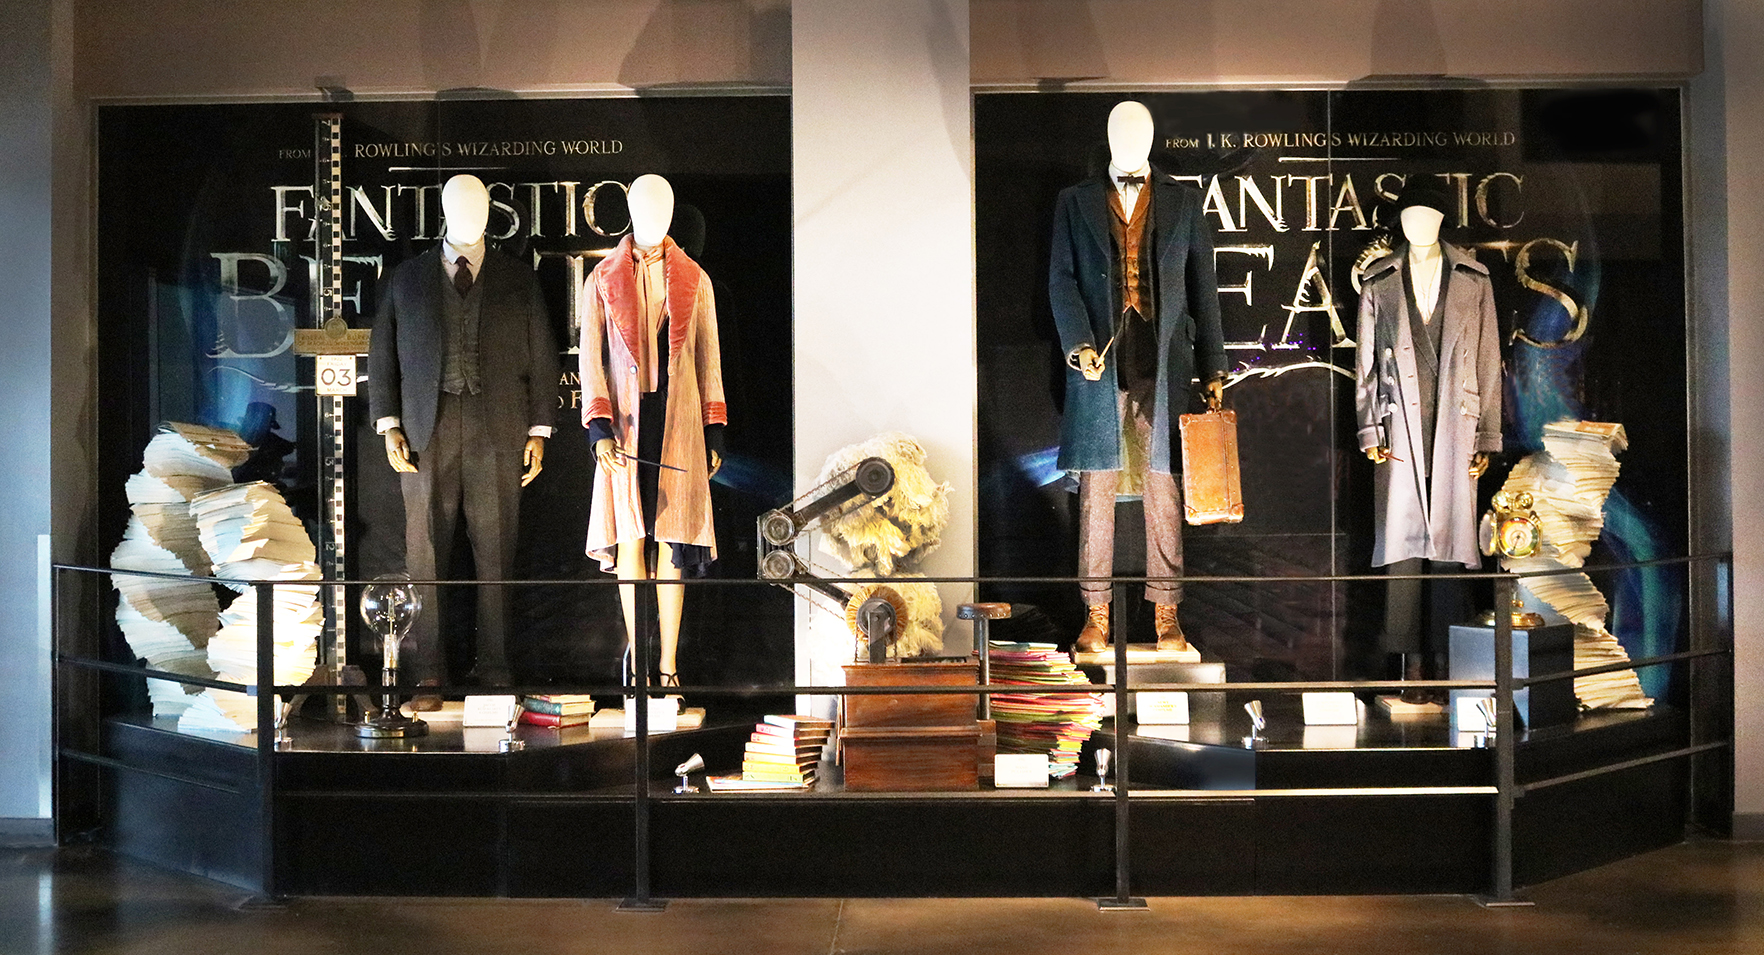 A display of the costumes belonging to the central four characters from Fantastic Beasts and Where to Find Them